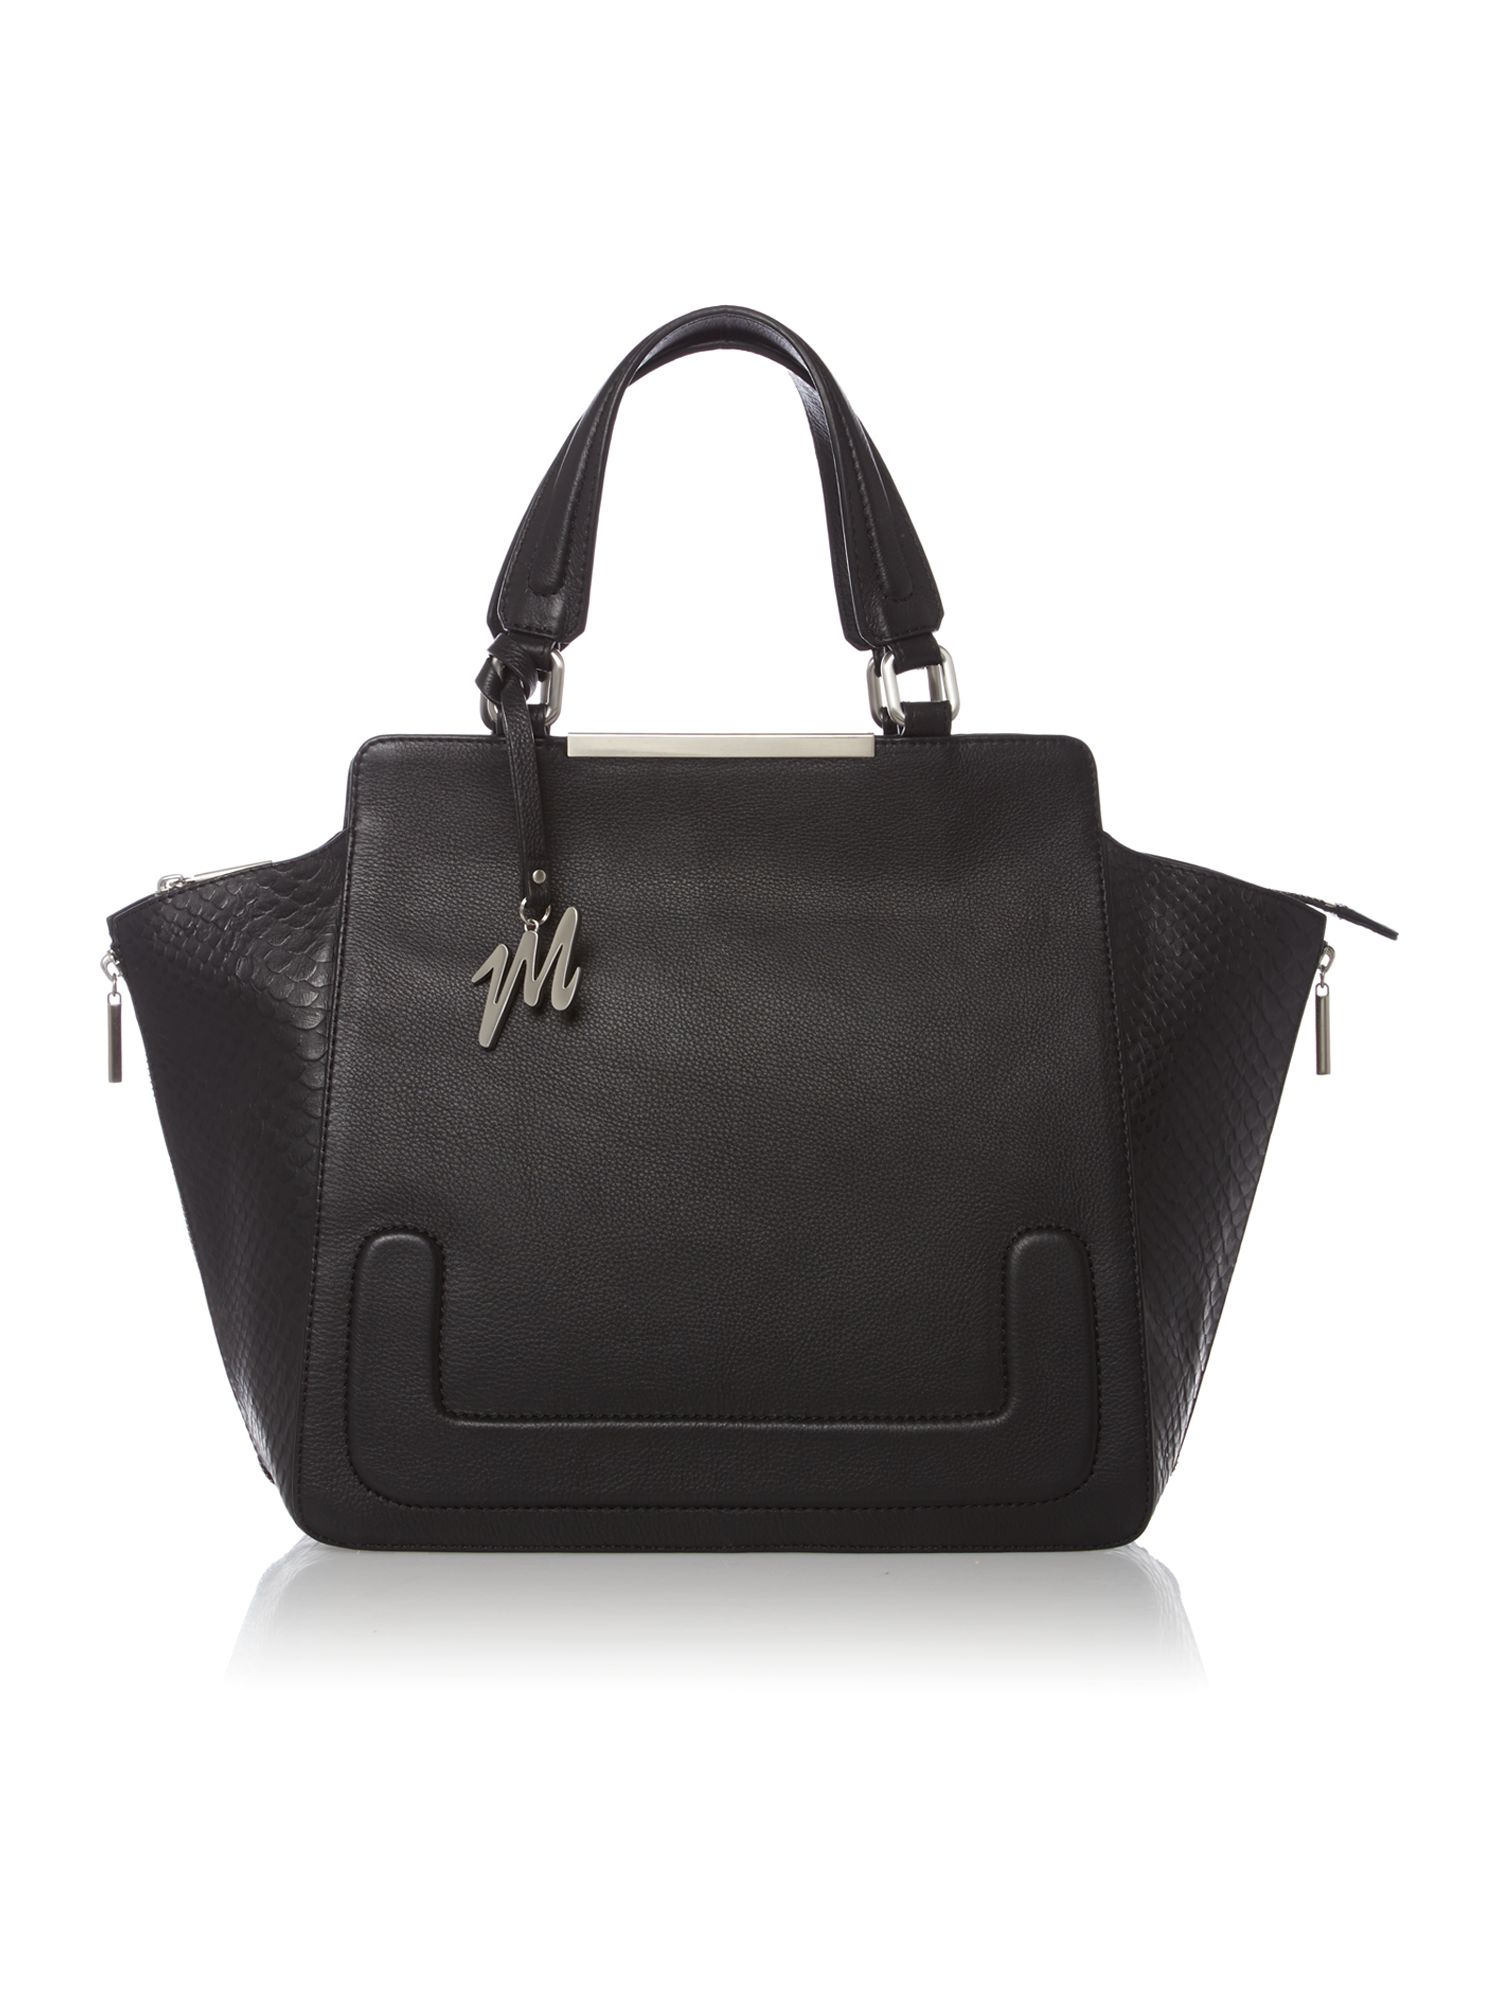 Billie winged tote bag